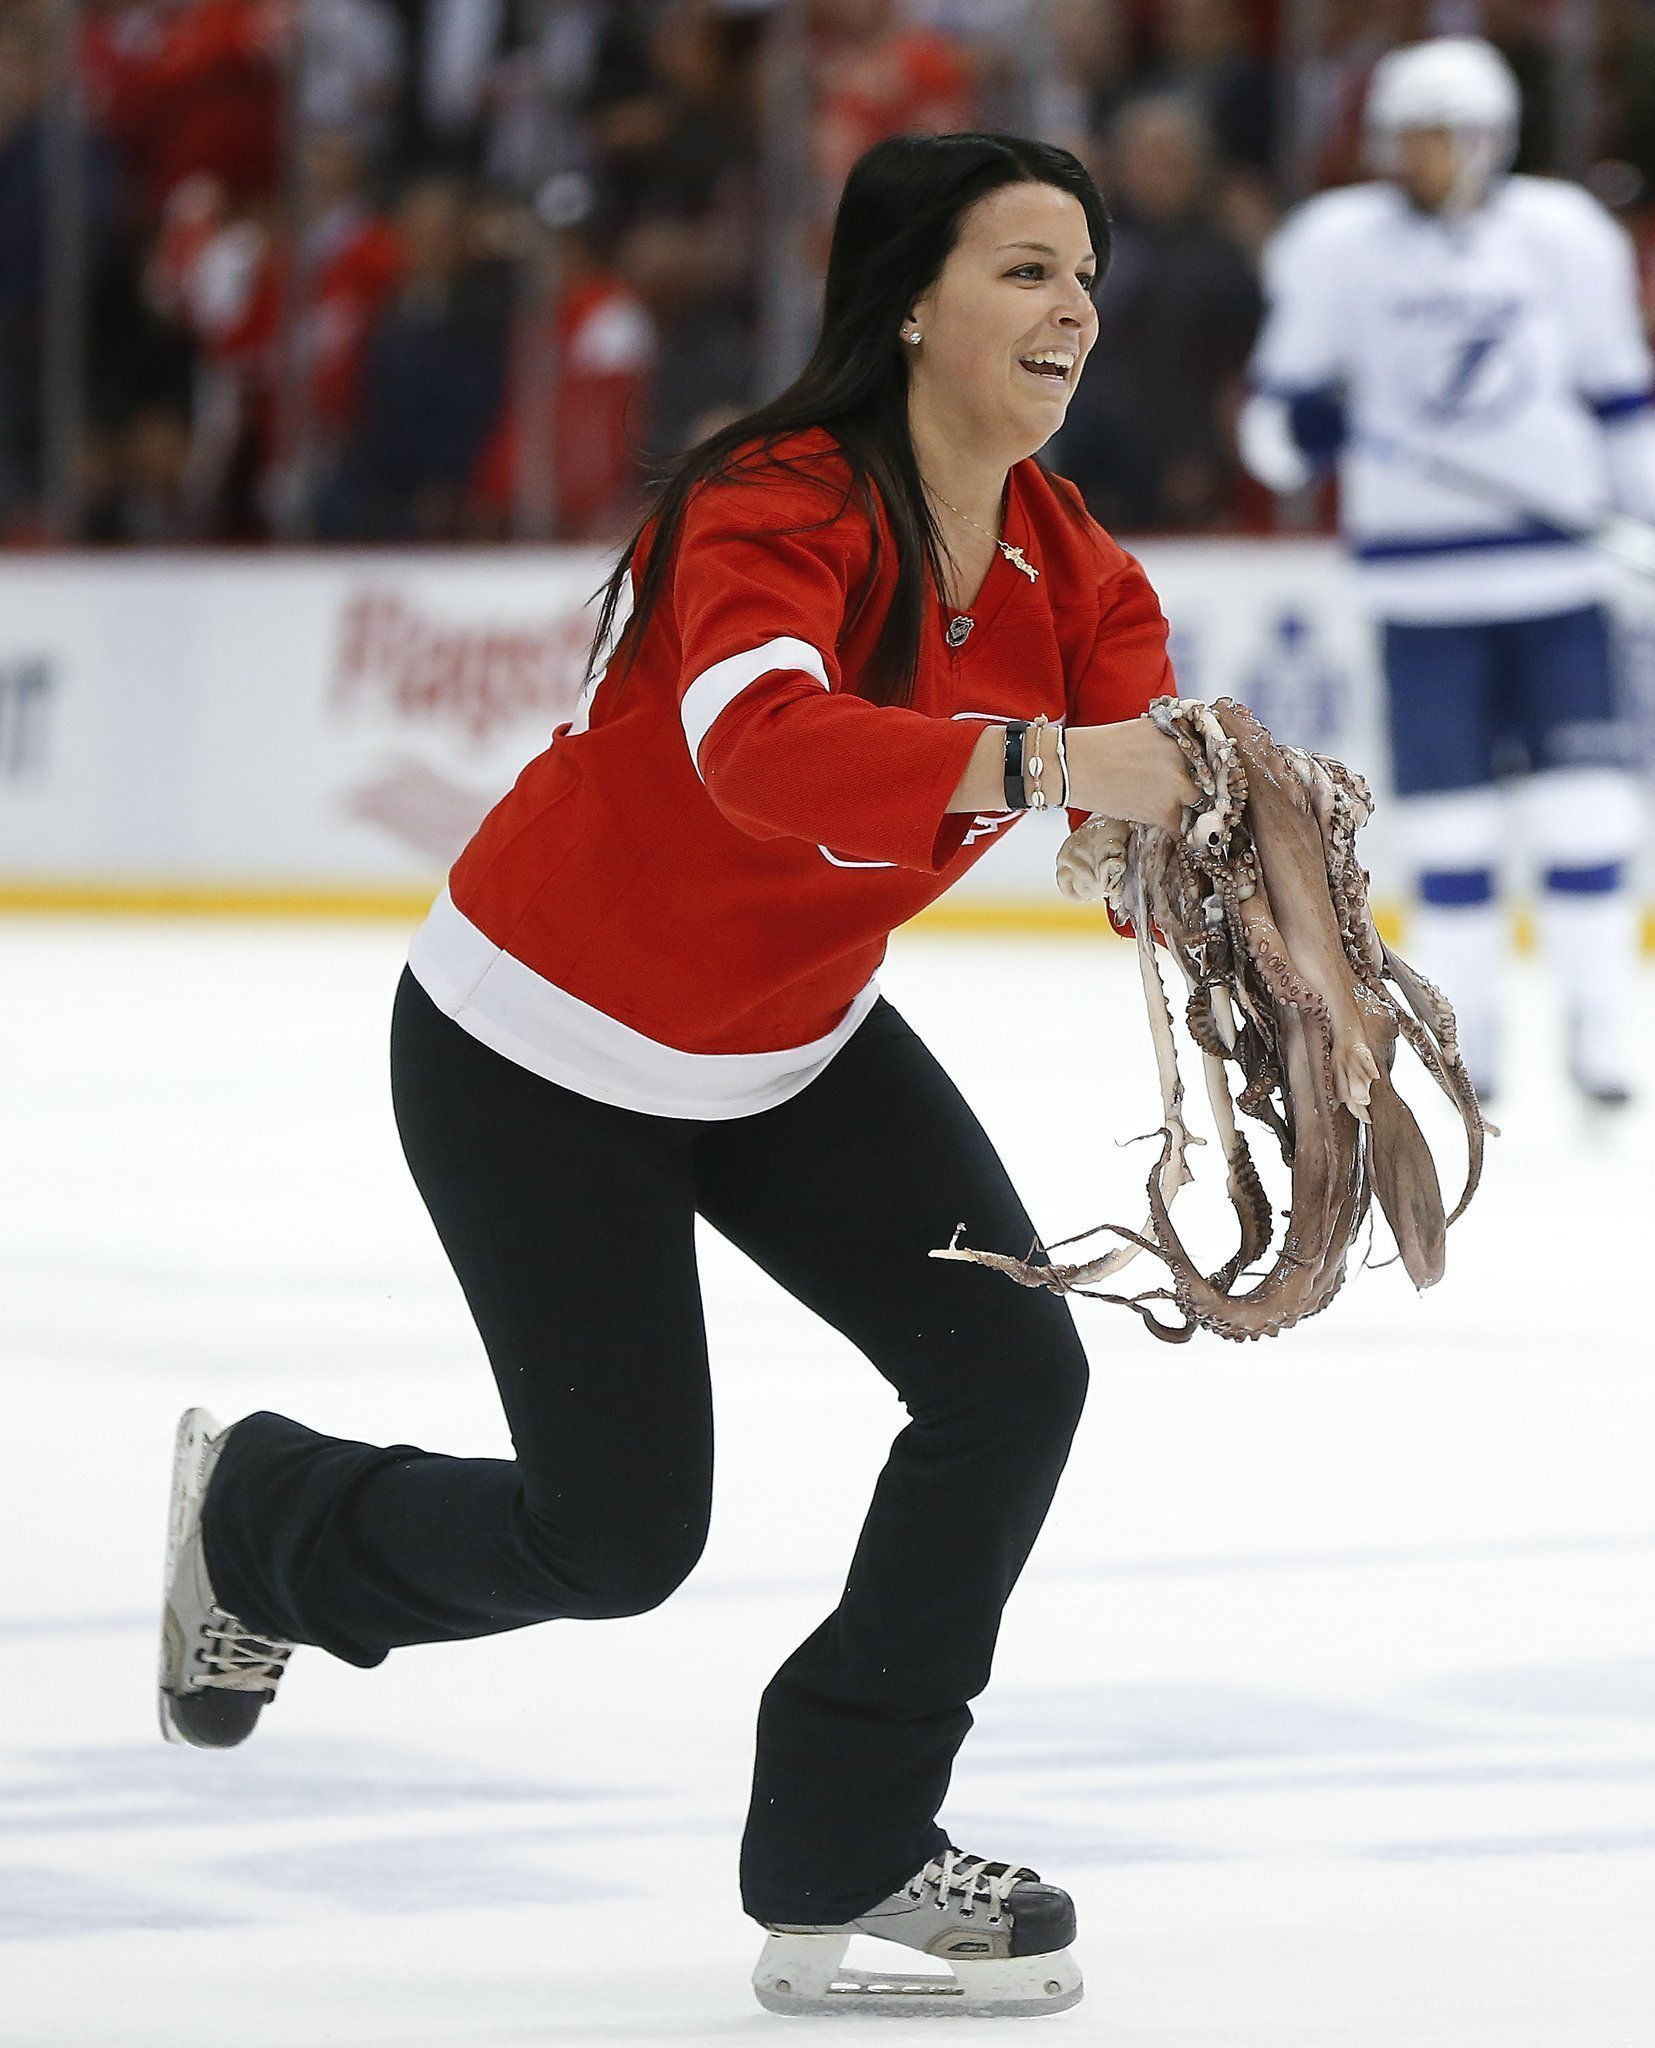 Rats octopi and sharks nhl needs pest control for playoffs the rats octopi and sharks nhl needs pest control for playoffs the san diego union tribune voltagebd Gallery